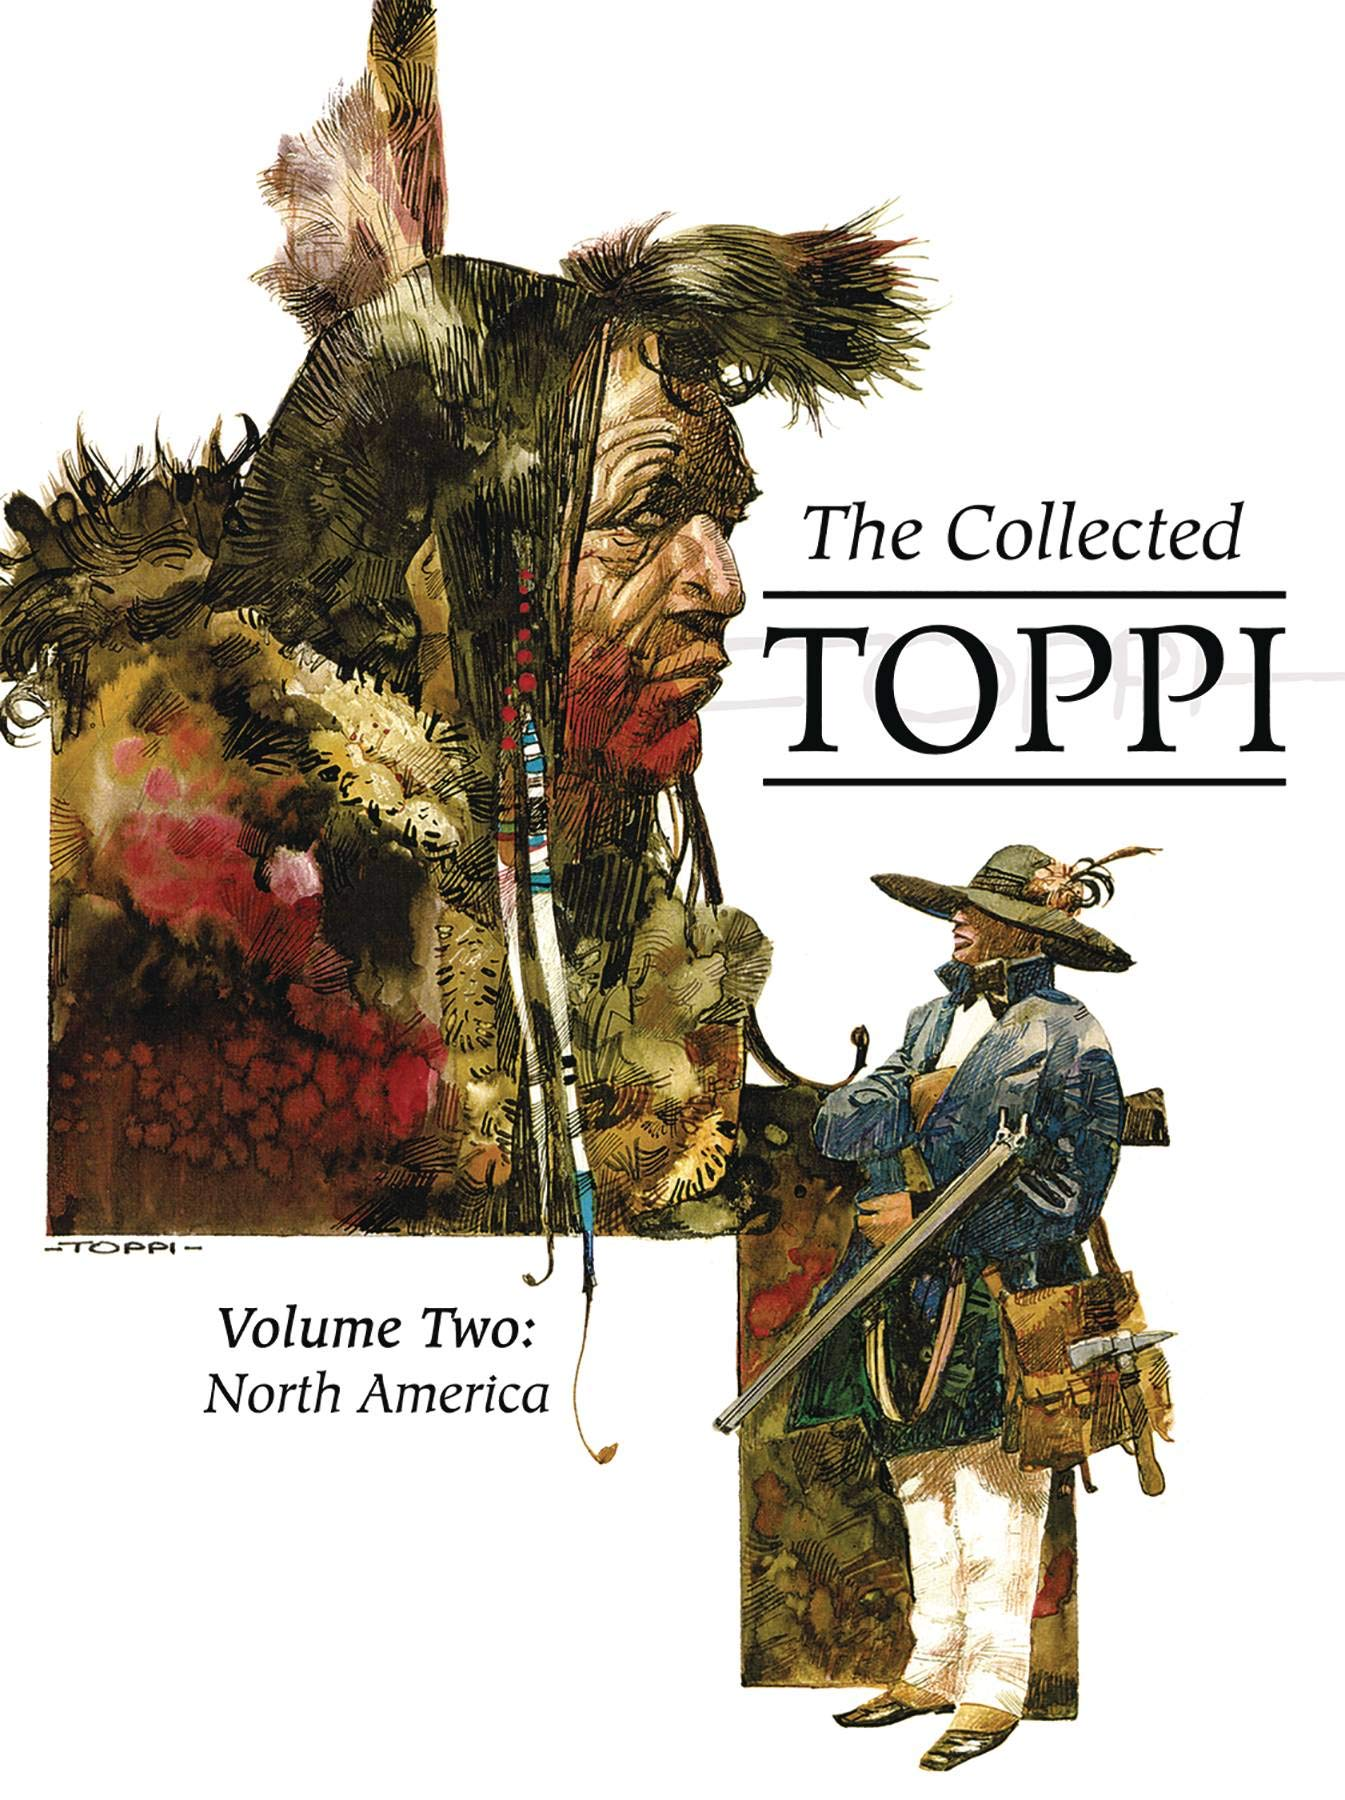 The Collected Toppi Vol. 2  North America